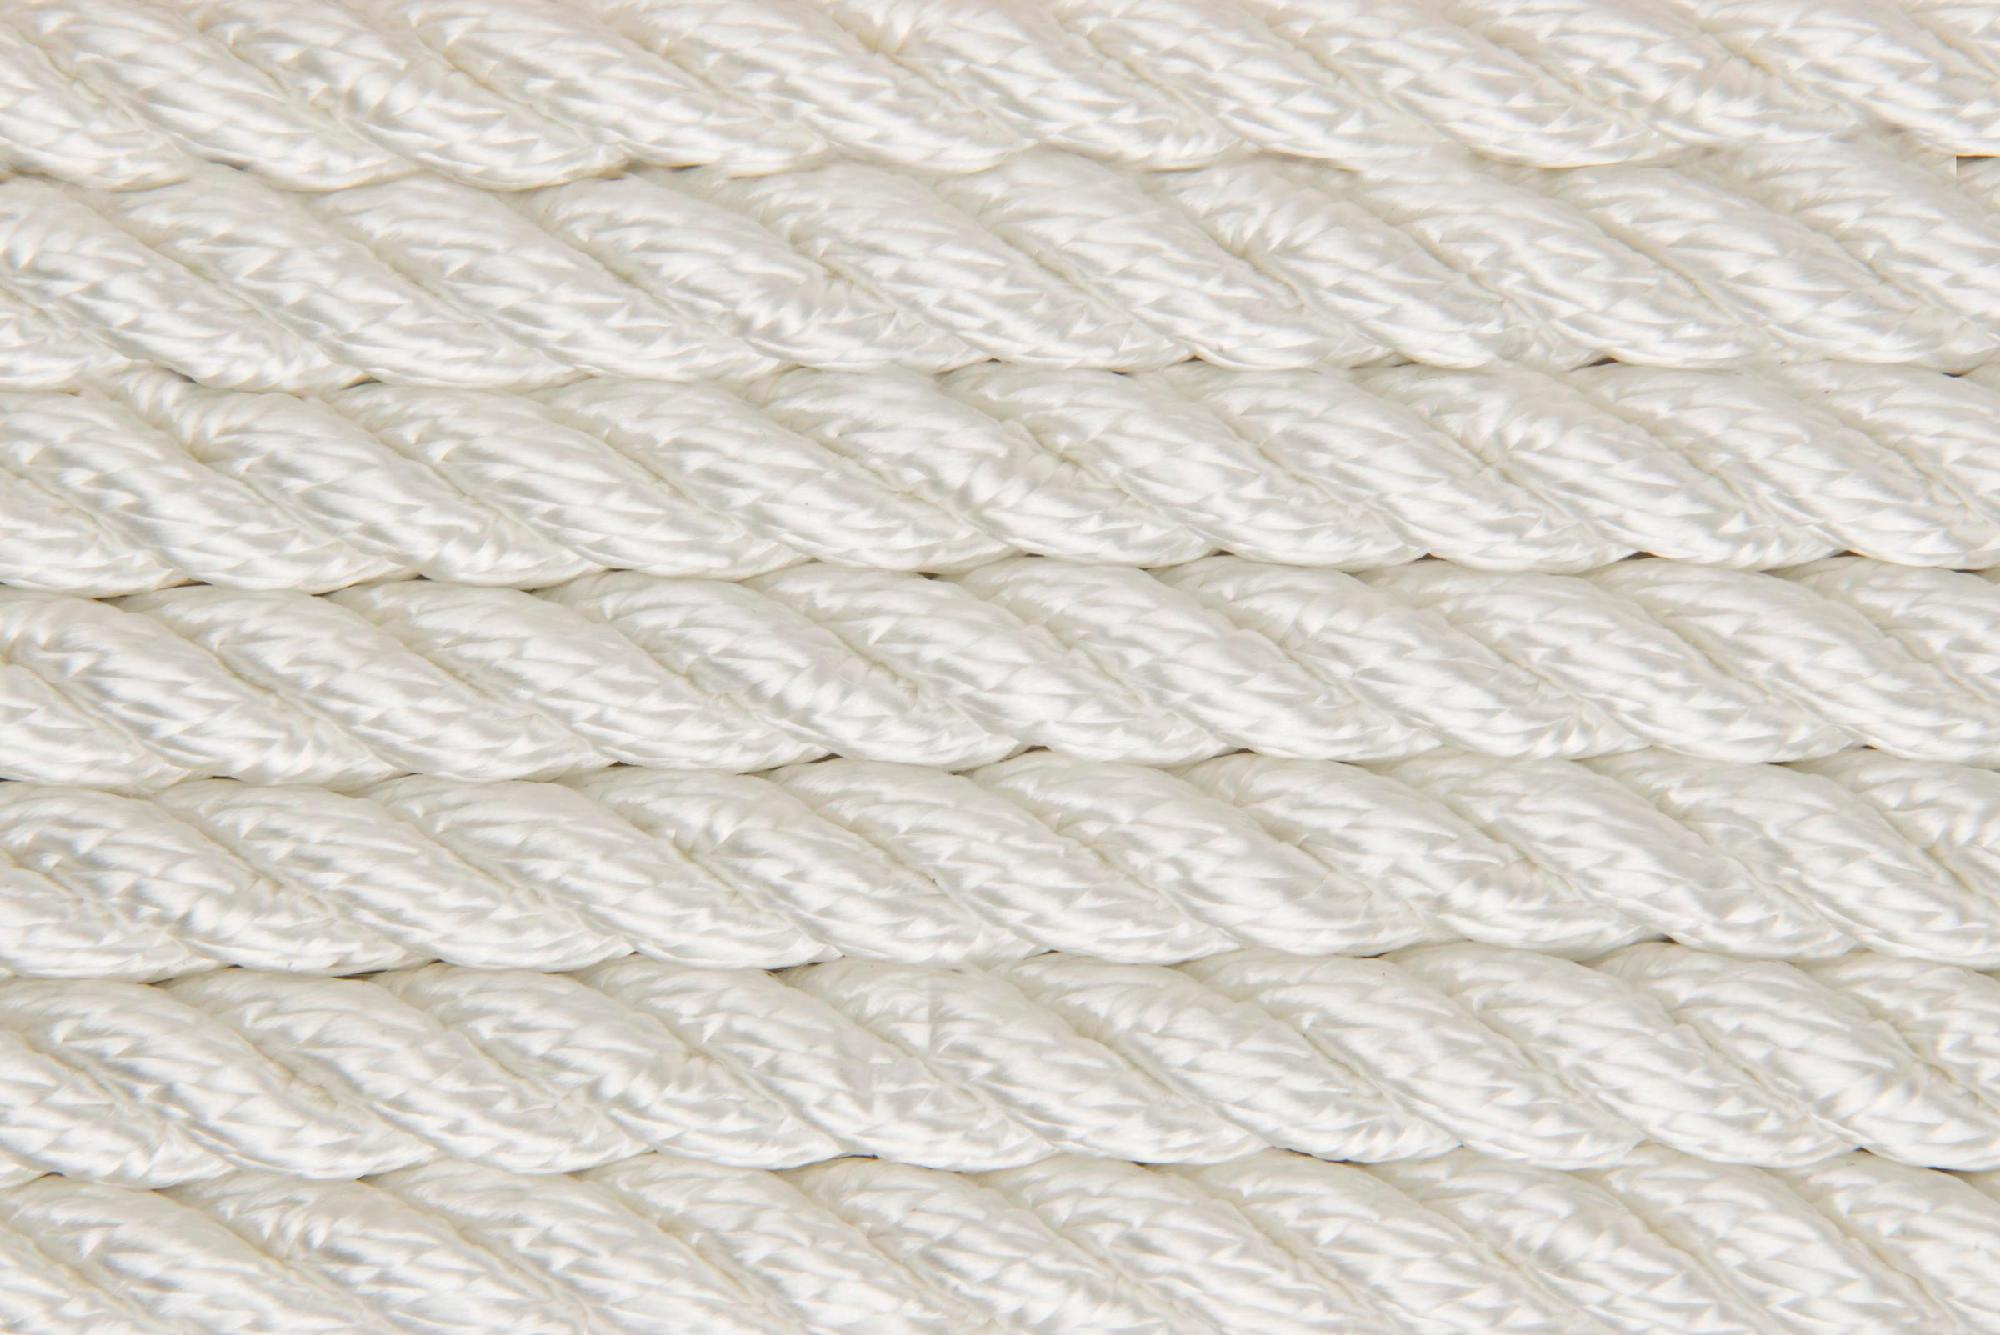 Shoreline Marine  Double Braided Nylon